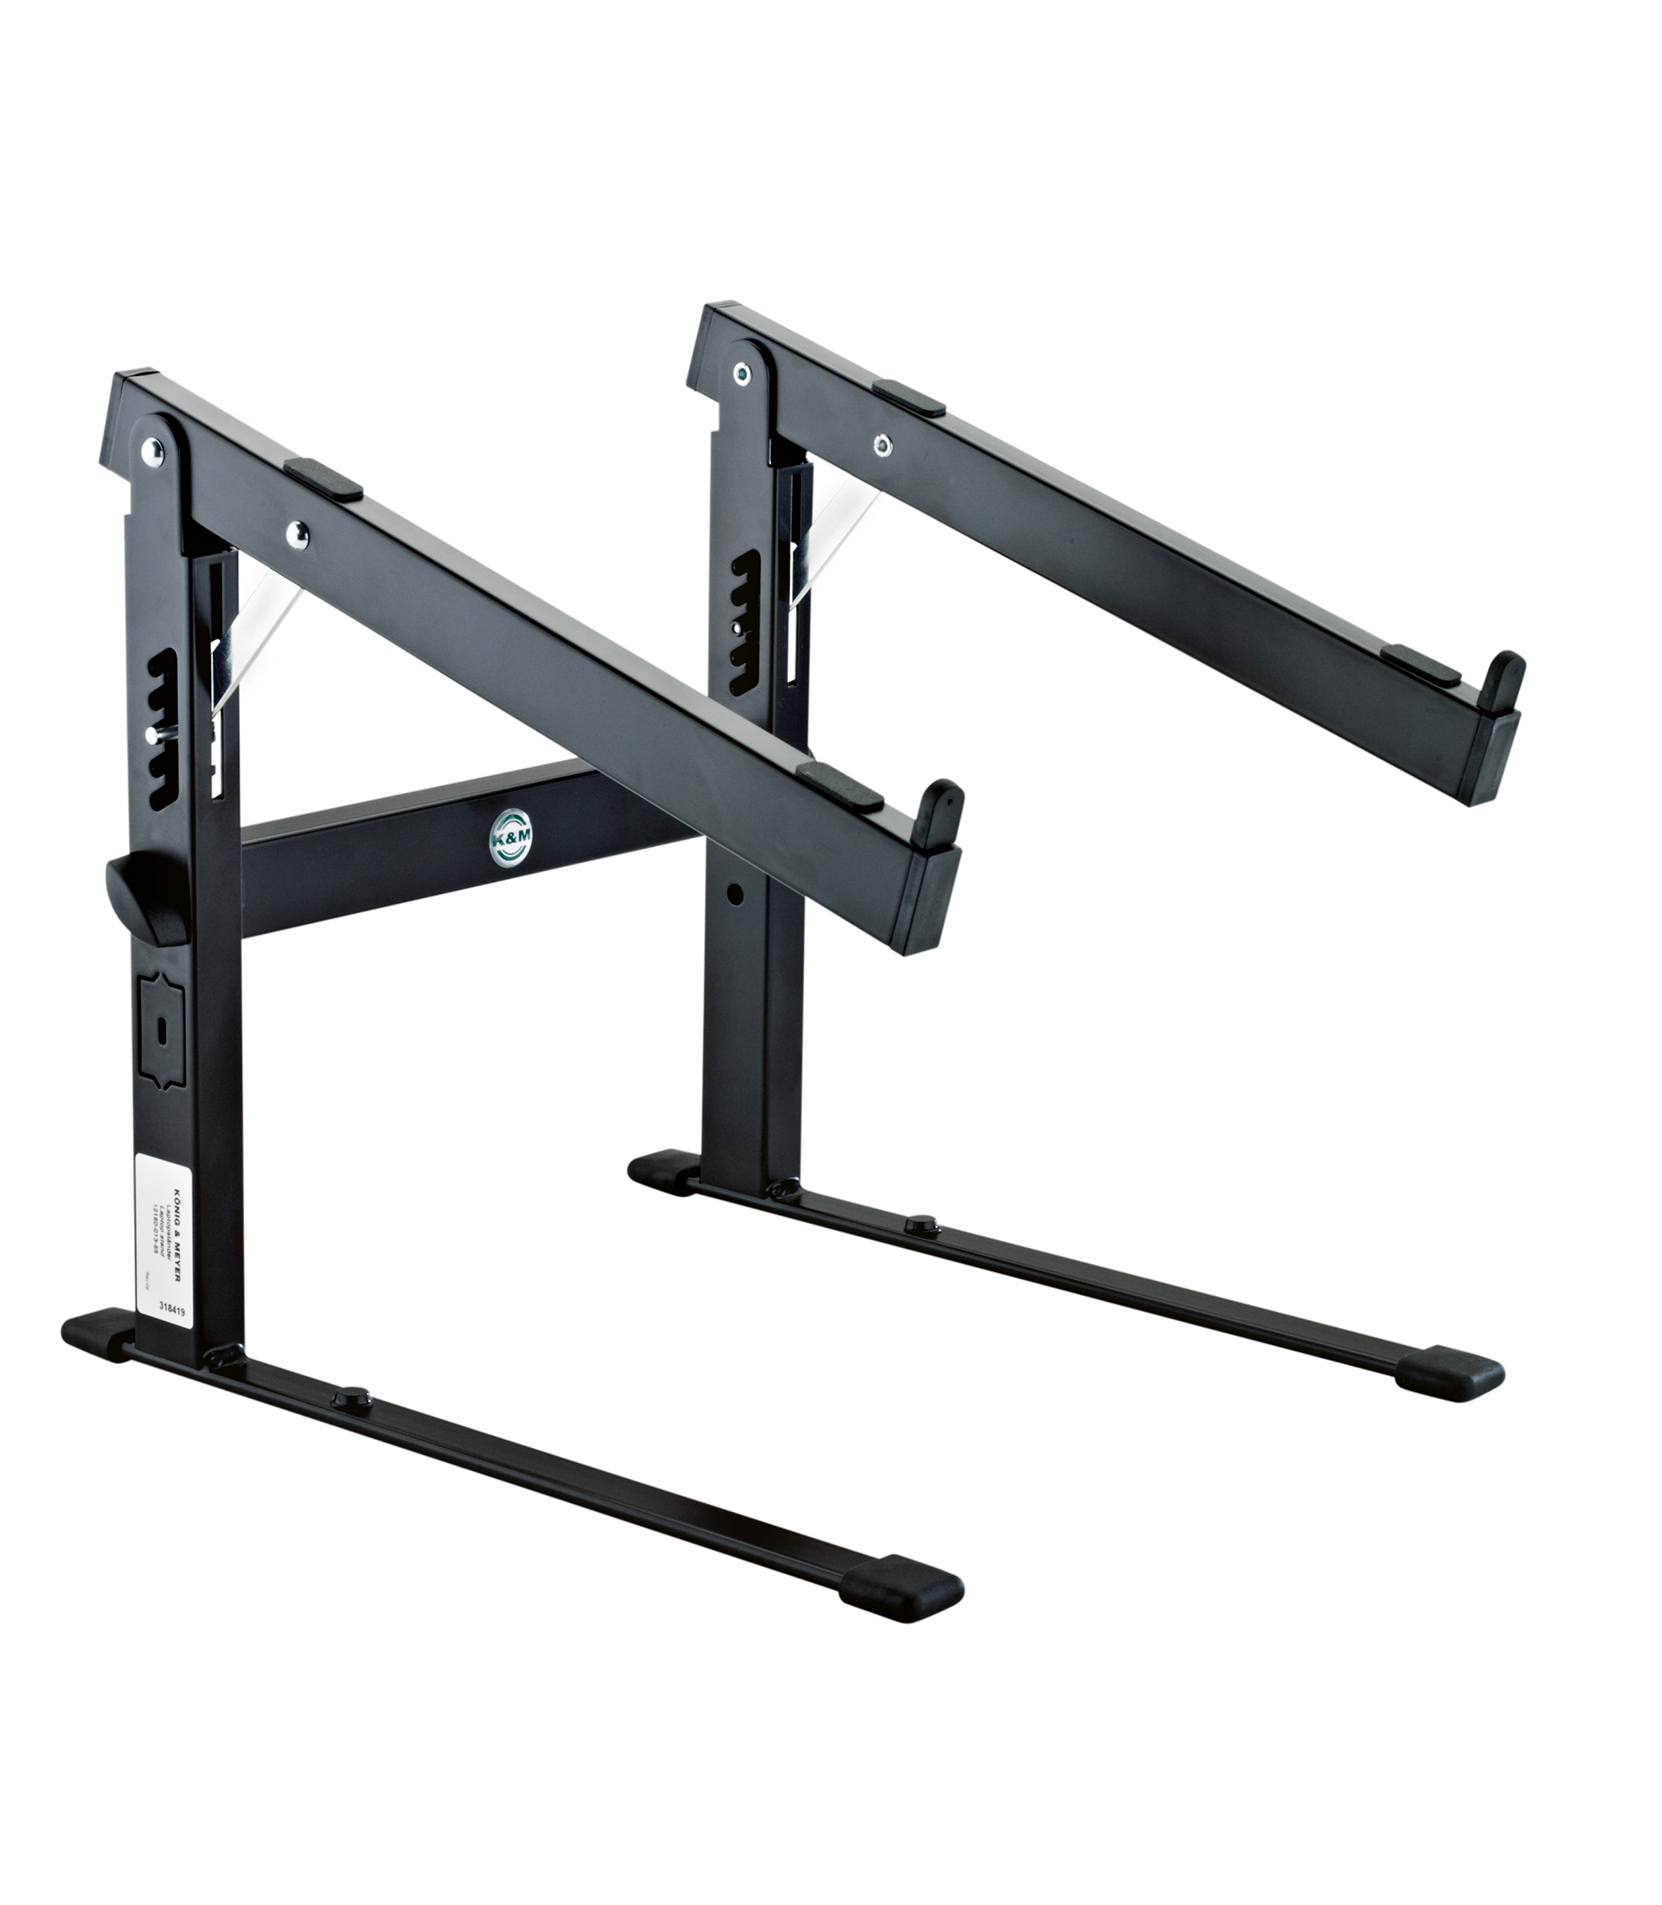 Buy K&M - 12180 013 55 Laptop standblack